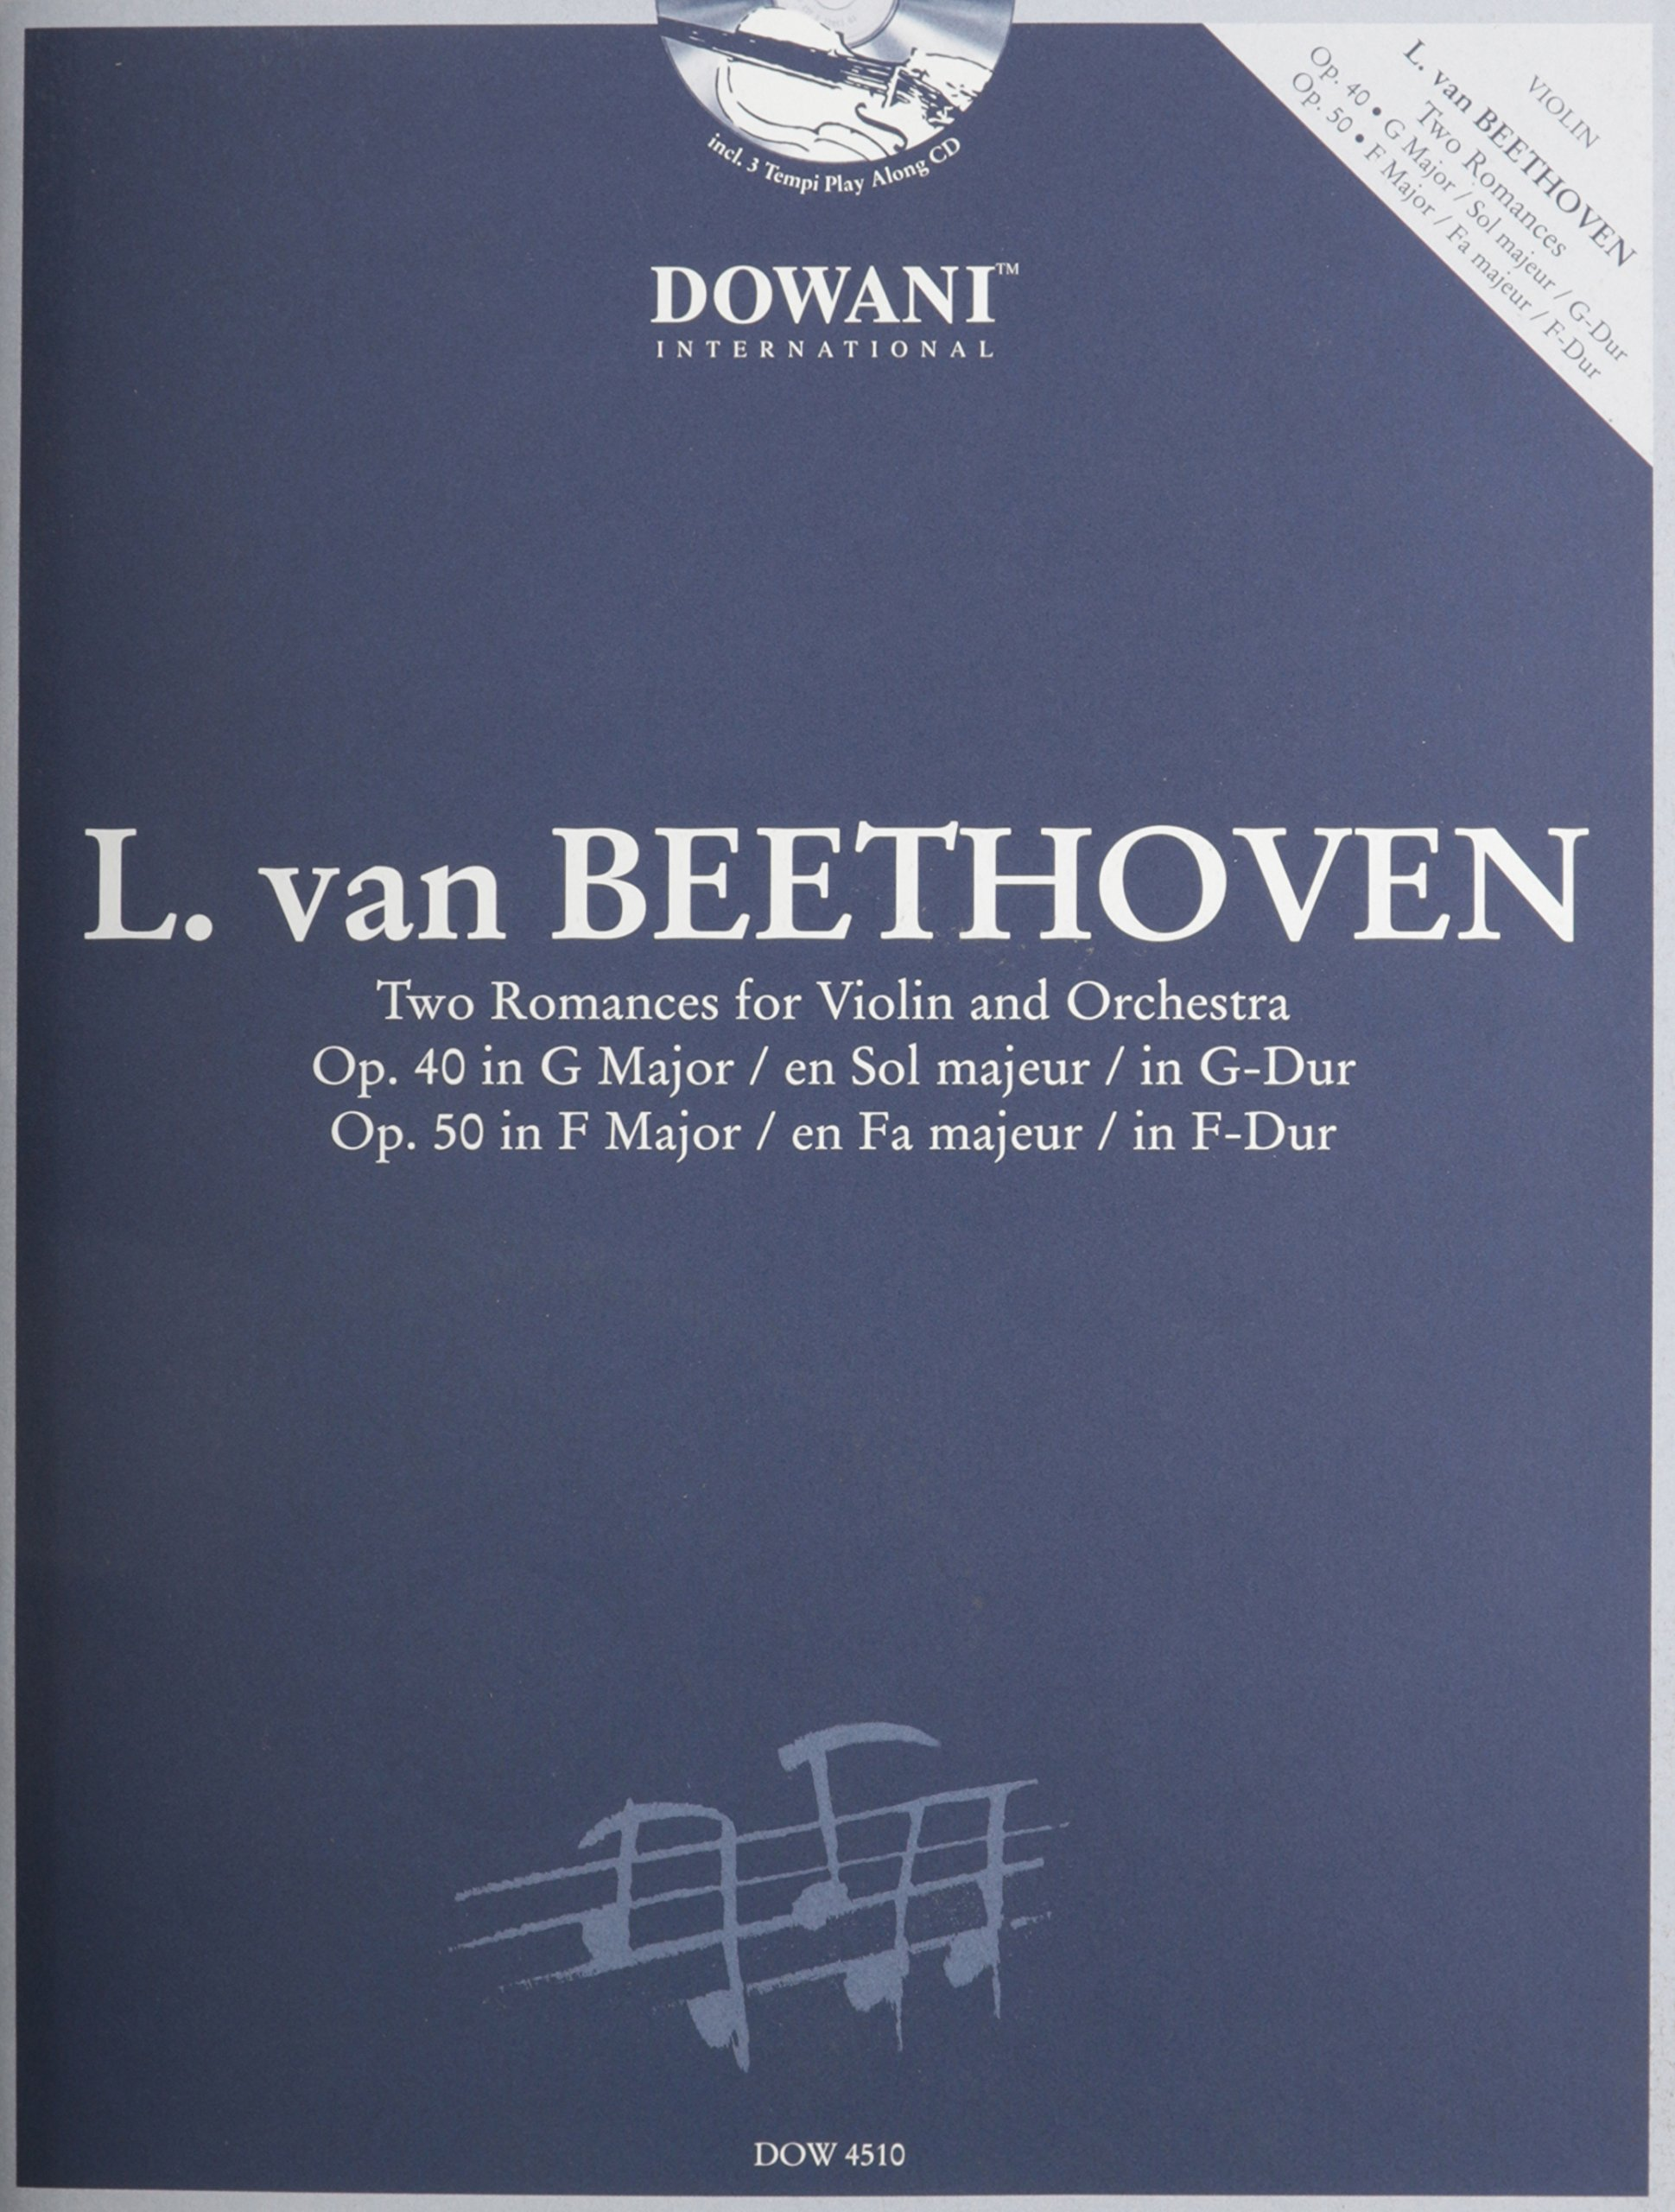 Download Beethoven: Two Romances for Violin and Orchestra: Op. 40 in G Major and Op. 50 in F Major PDF